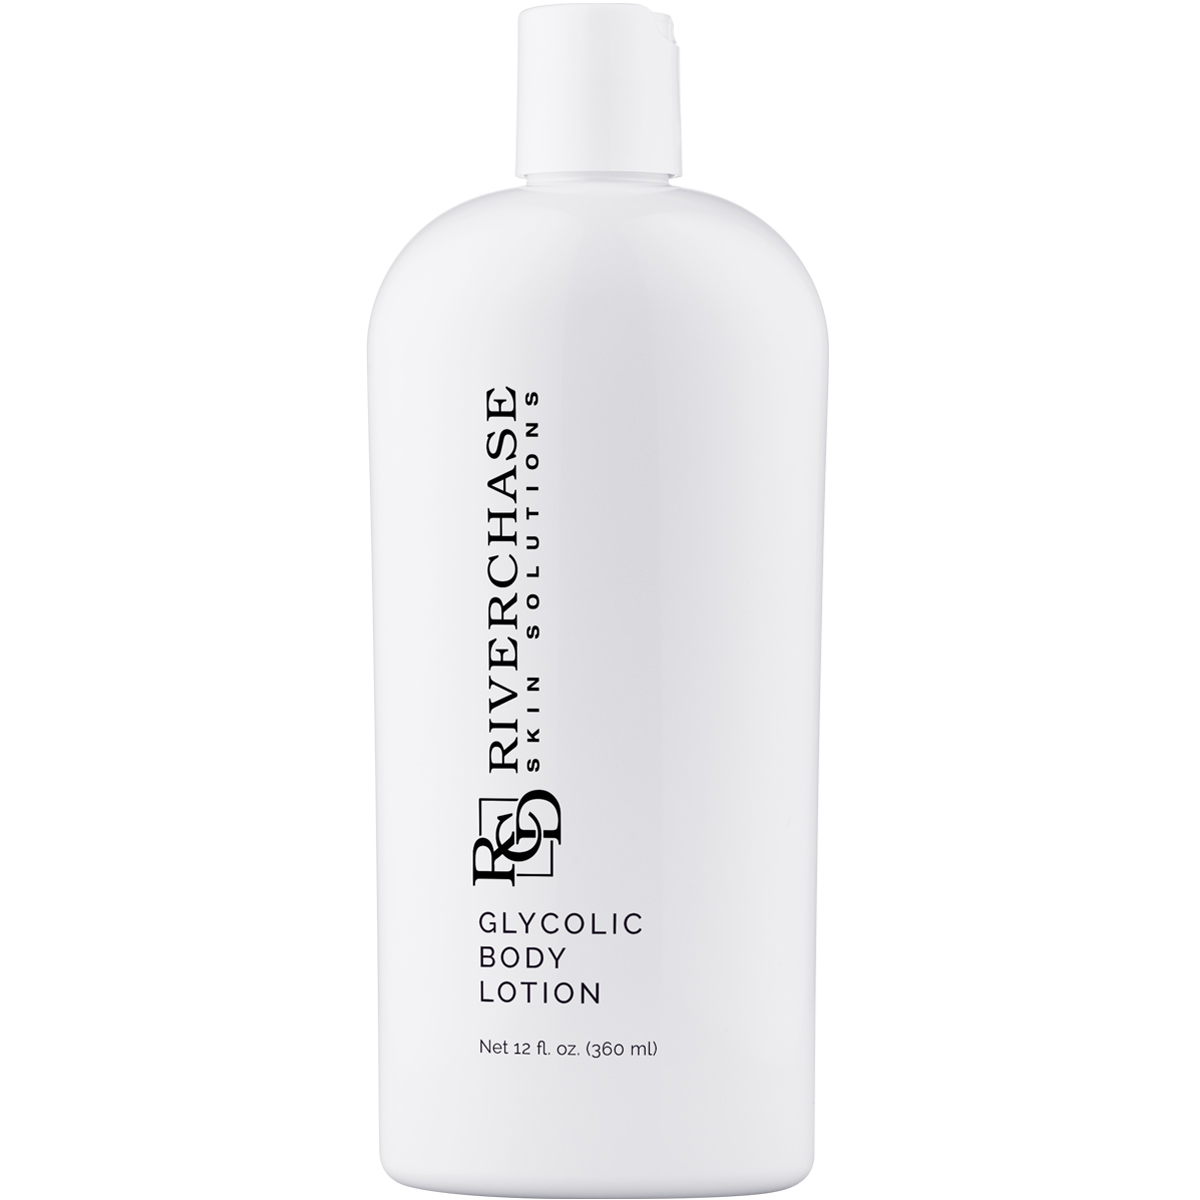 Glycolic 15% Body Lotion